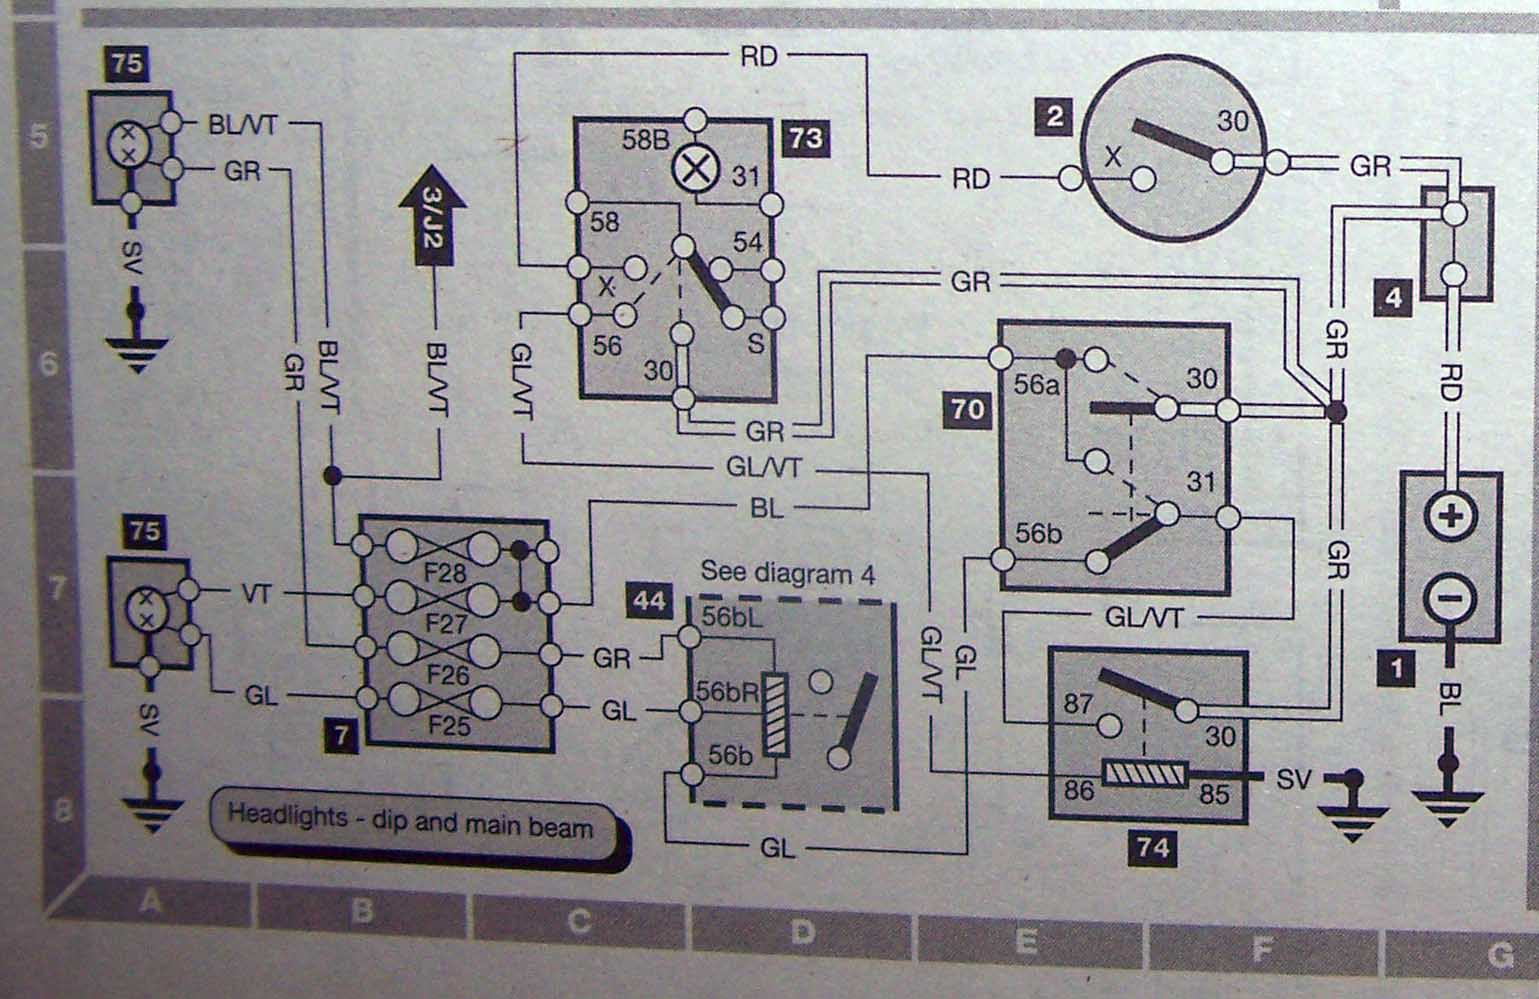 1995 Saab 900 Headlight Wiring Diagram Custom Diagrams Application U2022 Rh Cleanairclub Co Radio For Ignition Of Turbo